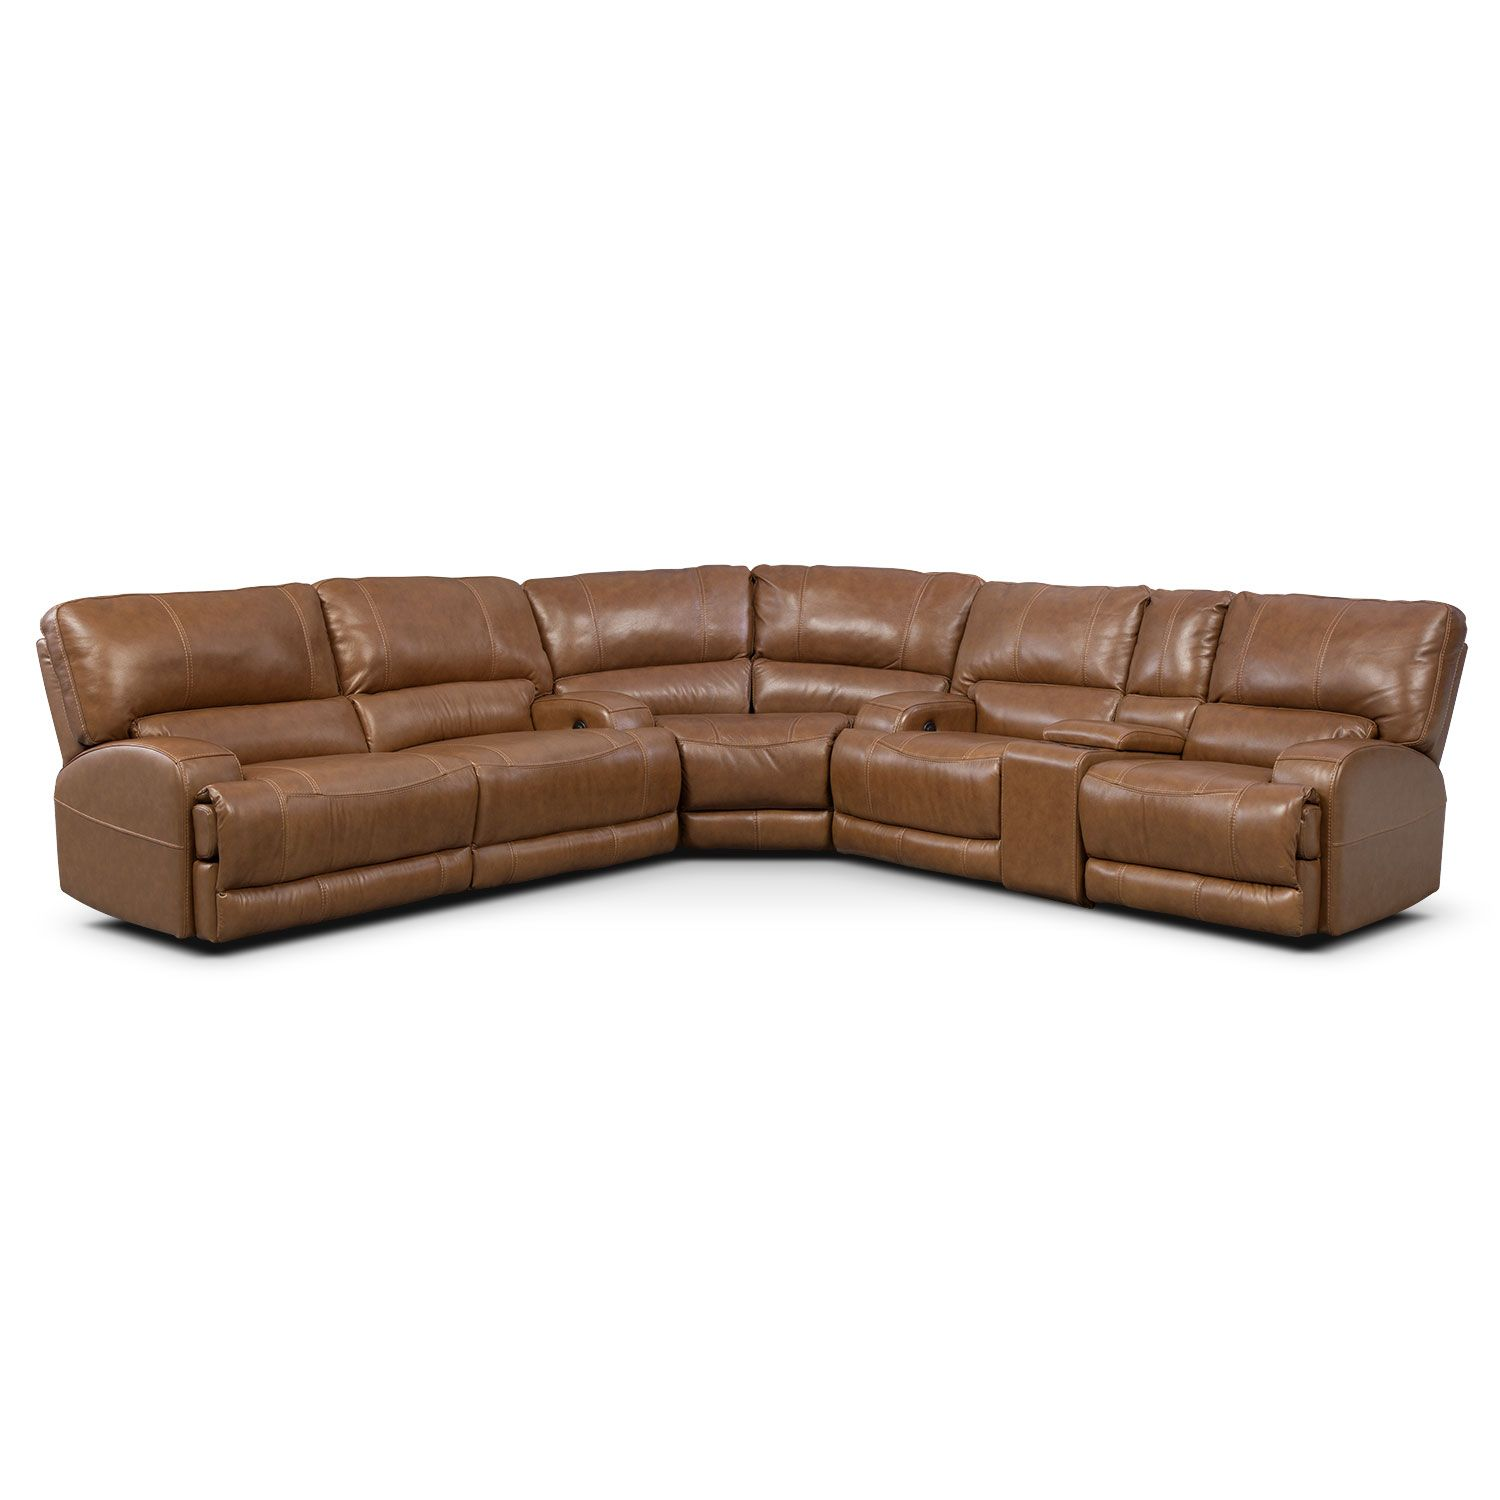 Living Room Furniture - Barton Camel 3 Pc. Power Reclining Sectional with Left-Facing  sc 1 st  Pinterest : 3 recliner sectional - Sectionals, Sofas & Couches